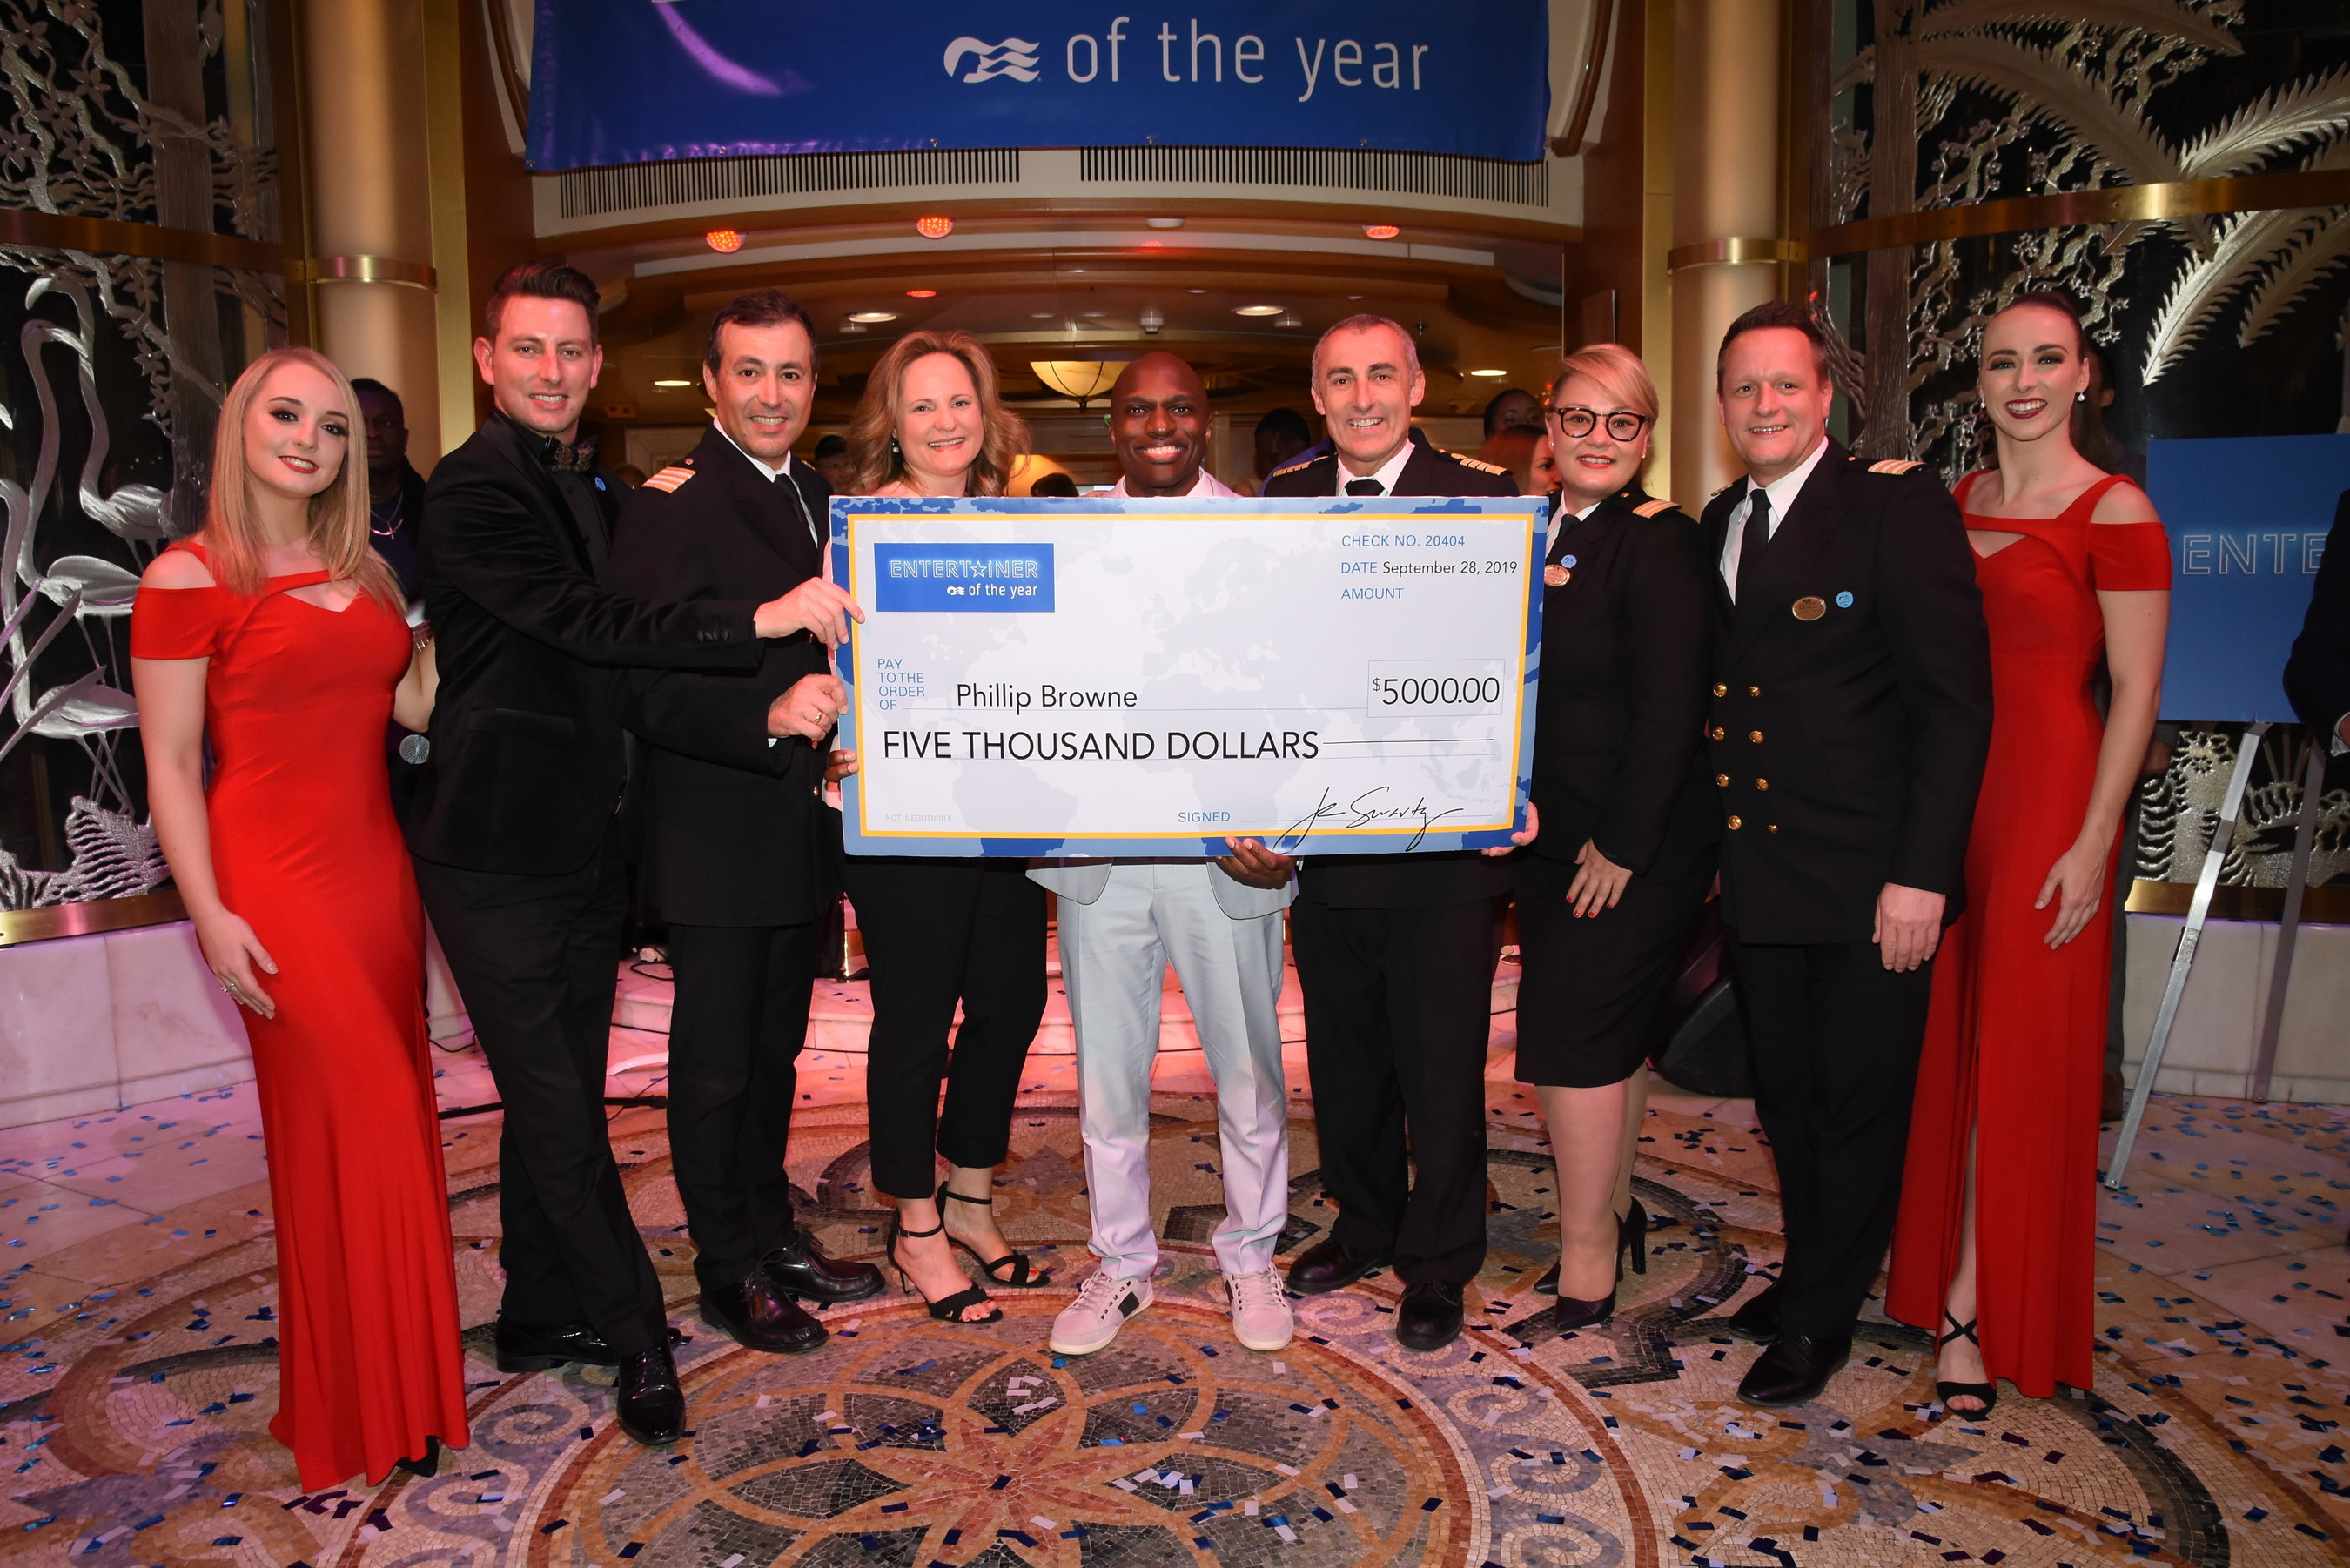 Vocalist Phillip Browne (center) was named Princess Cruises newest Entertainer of the Year onboard Star Princess on September 28, 2019